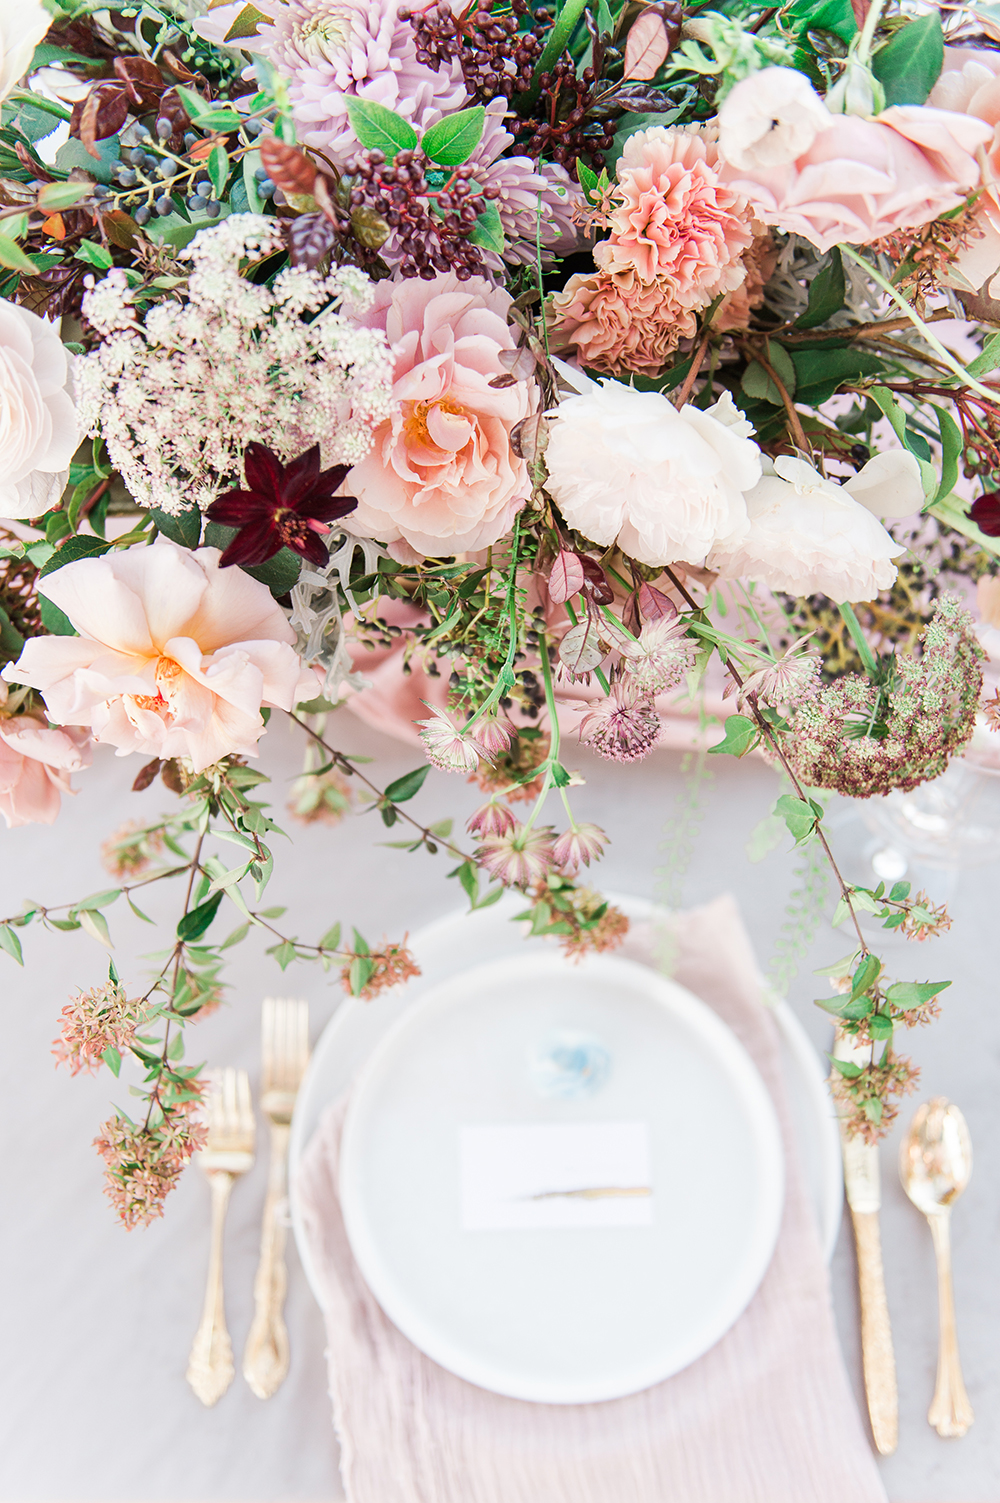 Ethereal Wedding Inspiration with Vintage Accents | Wedding